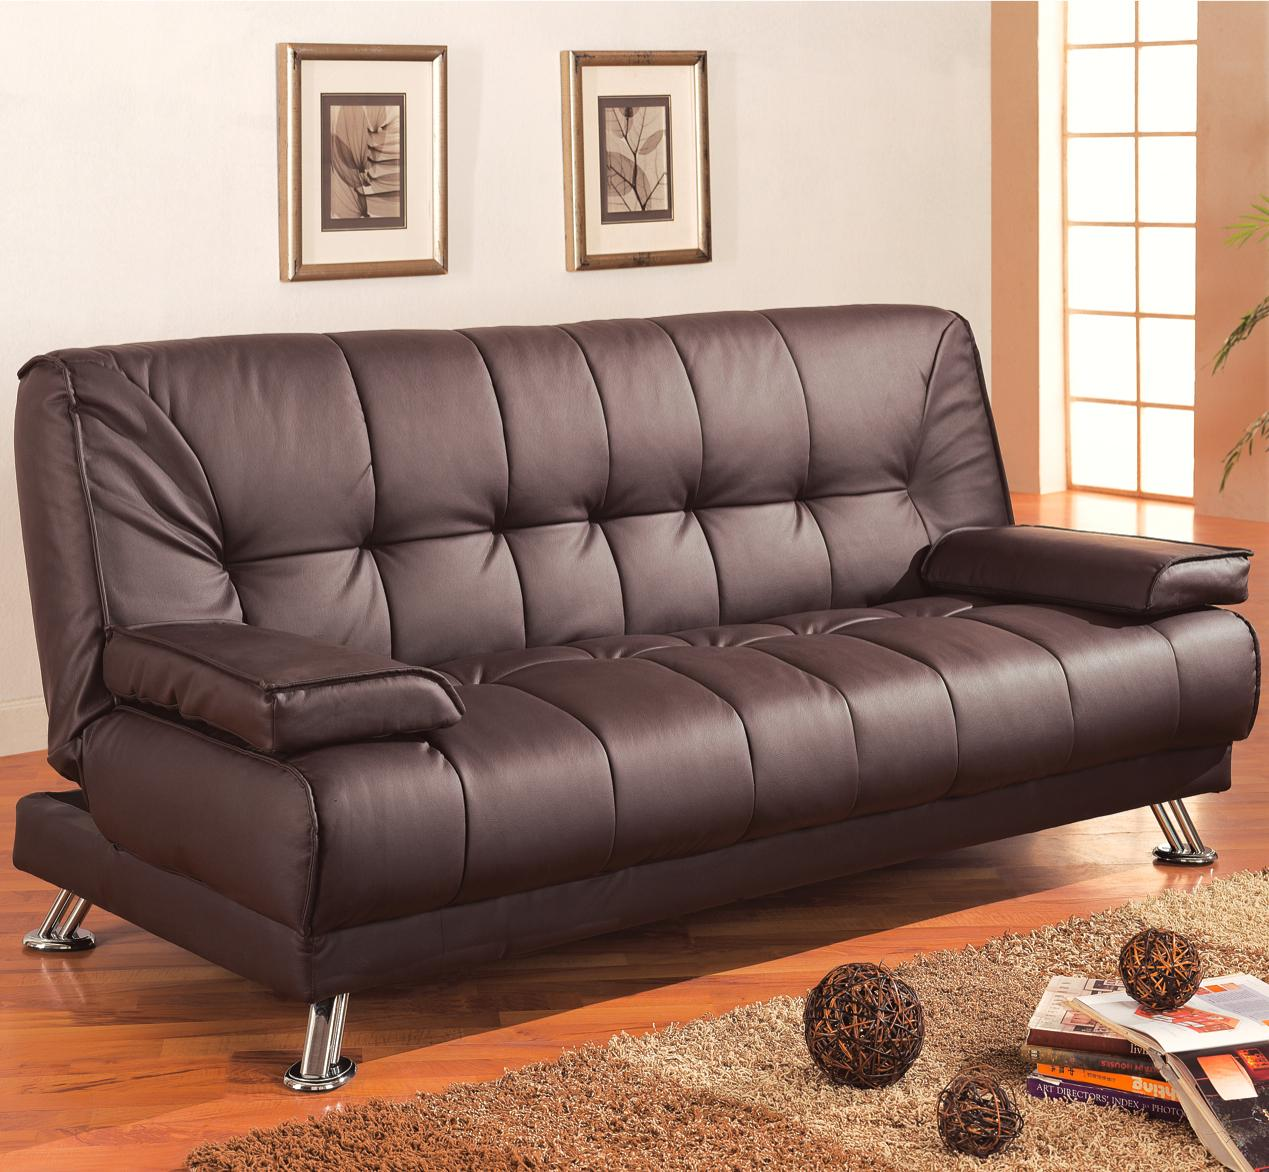 Sofa Beds and Futons Sofa Bed by Coaster at A1 Furniture & Mattress